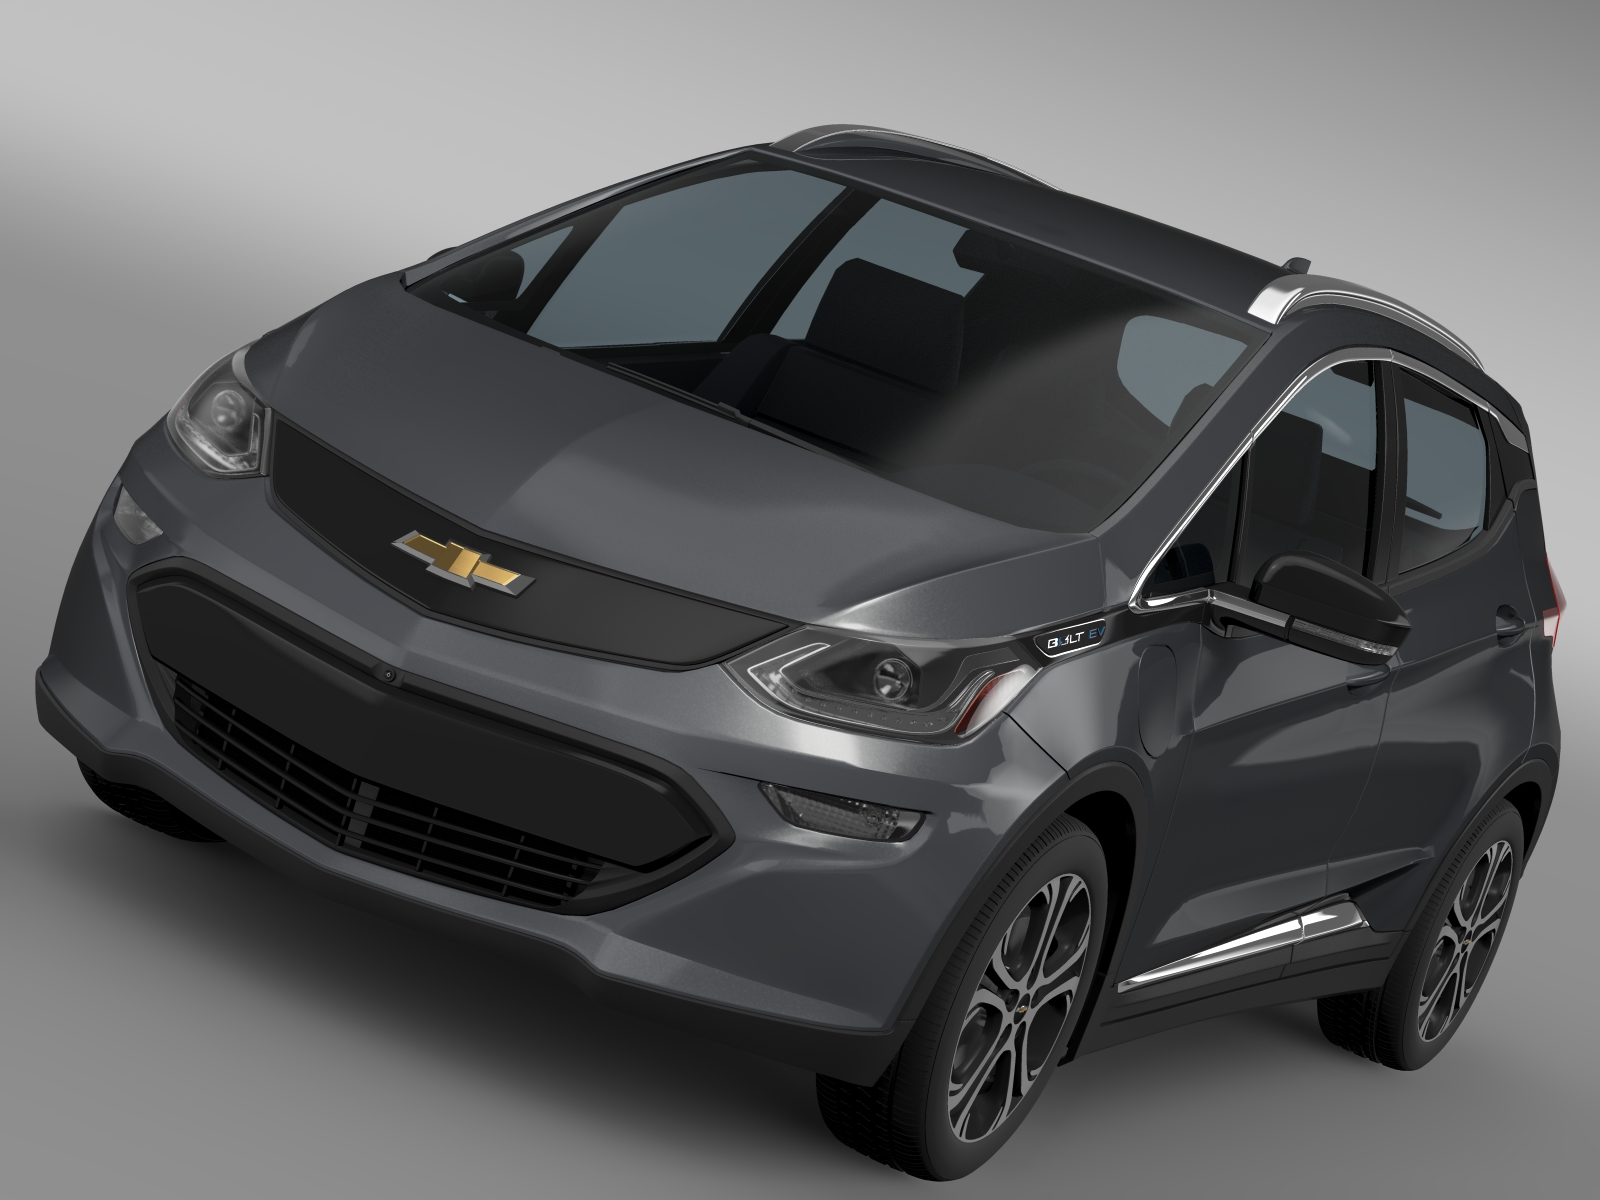 chevrolet bolt ev 2017 3d model 3ds max fbx c4d lwo ma